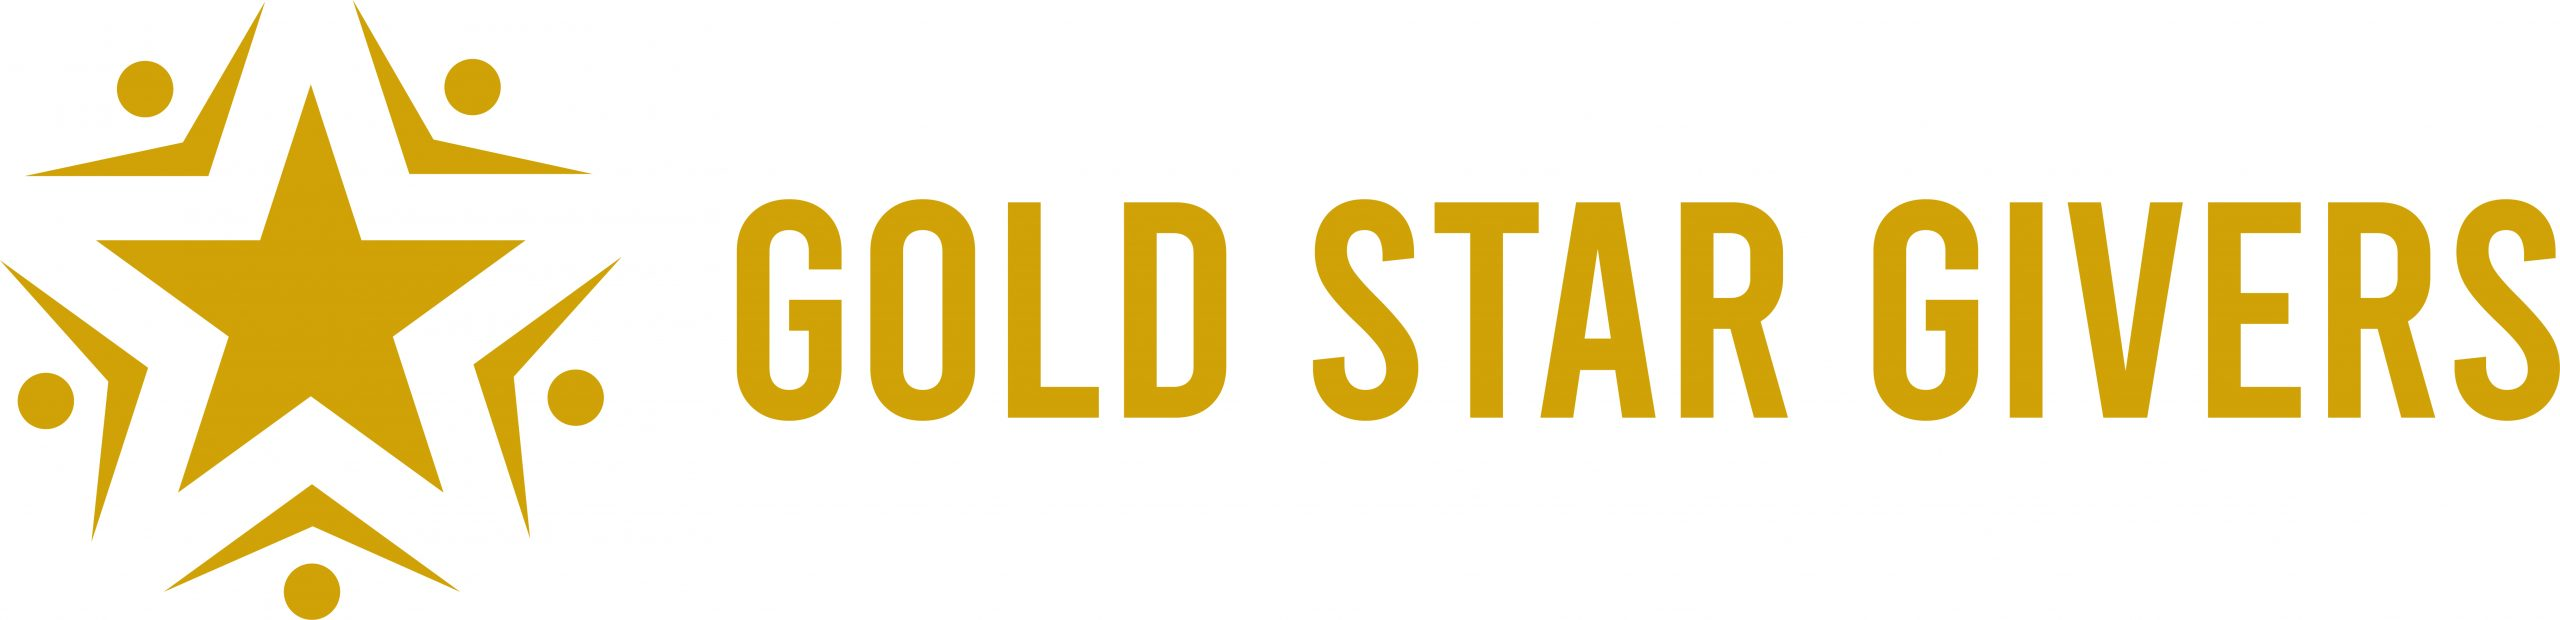 IDignity Gold Star Givers Logo - Landscape